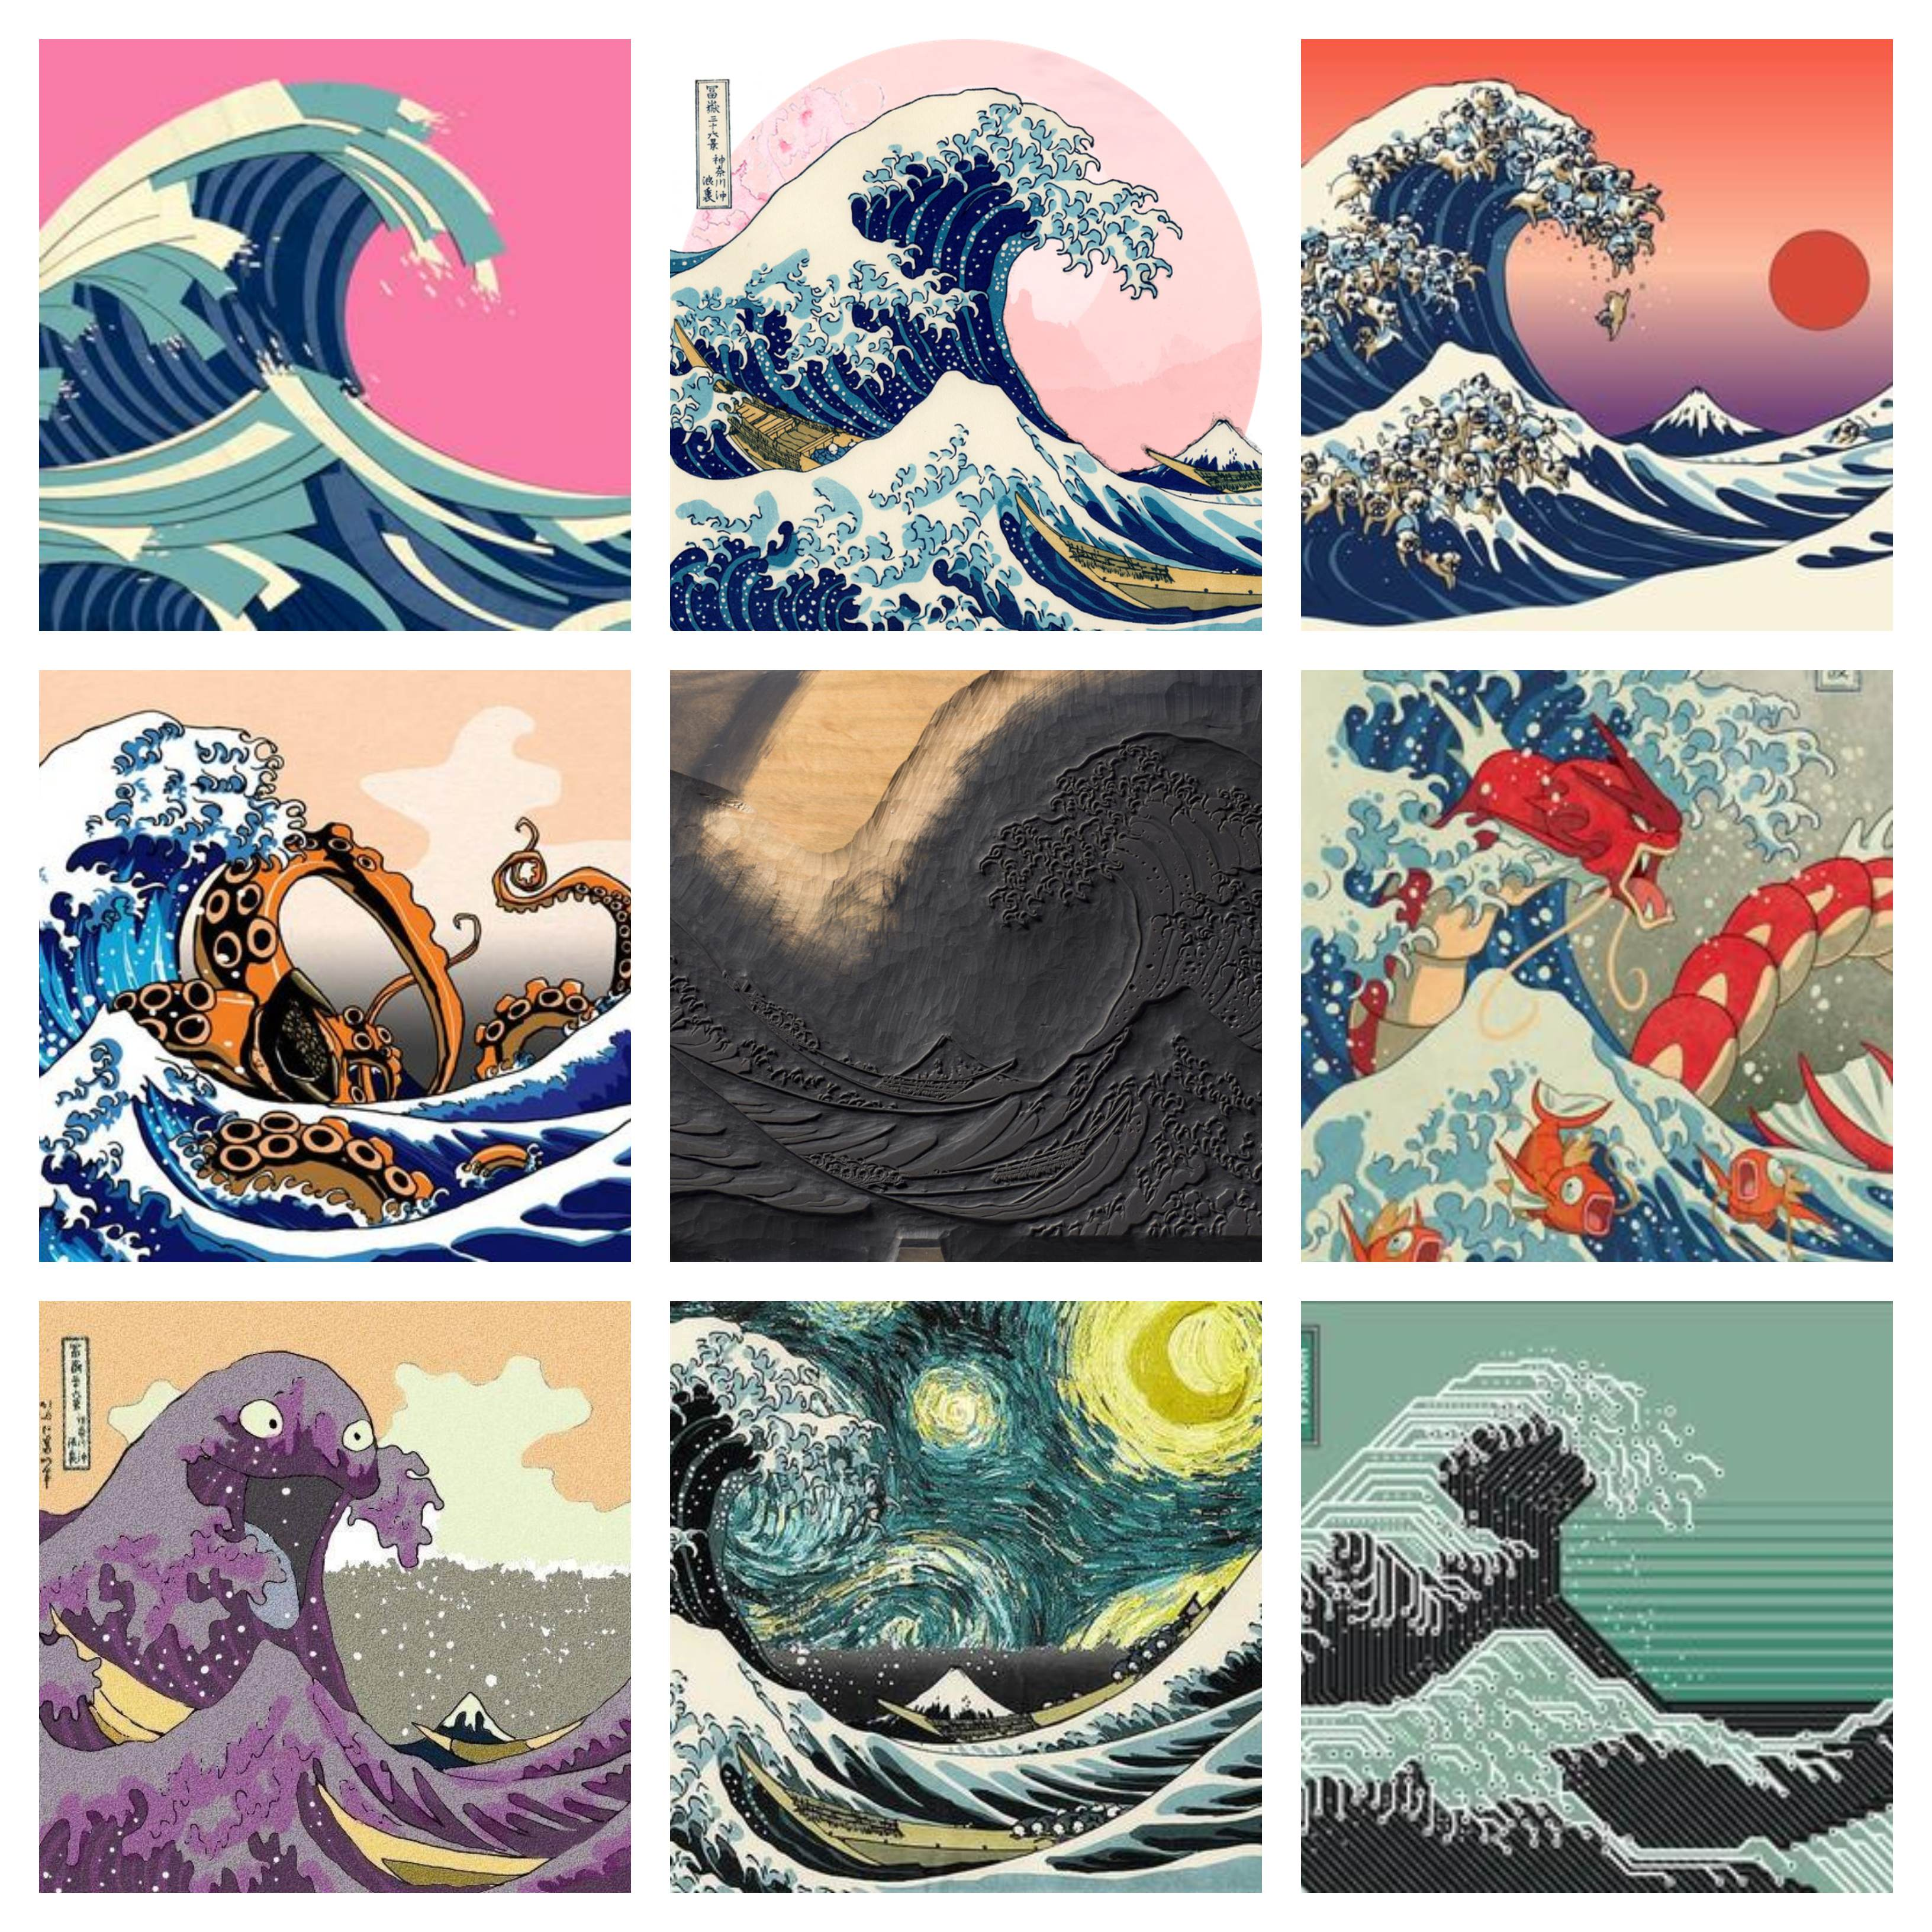 Collage of variations on the woodblock print The Great Wave off Kanagawa by the Japanese ukiyo-e artist Hokusai